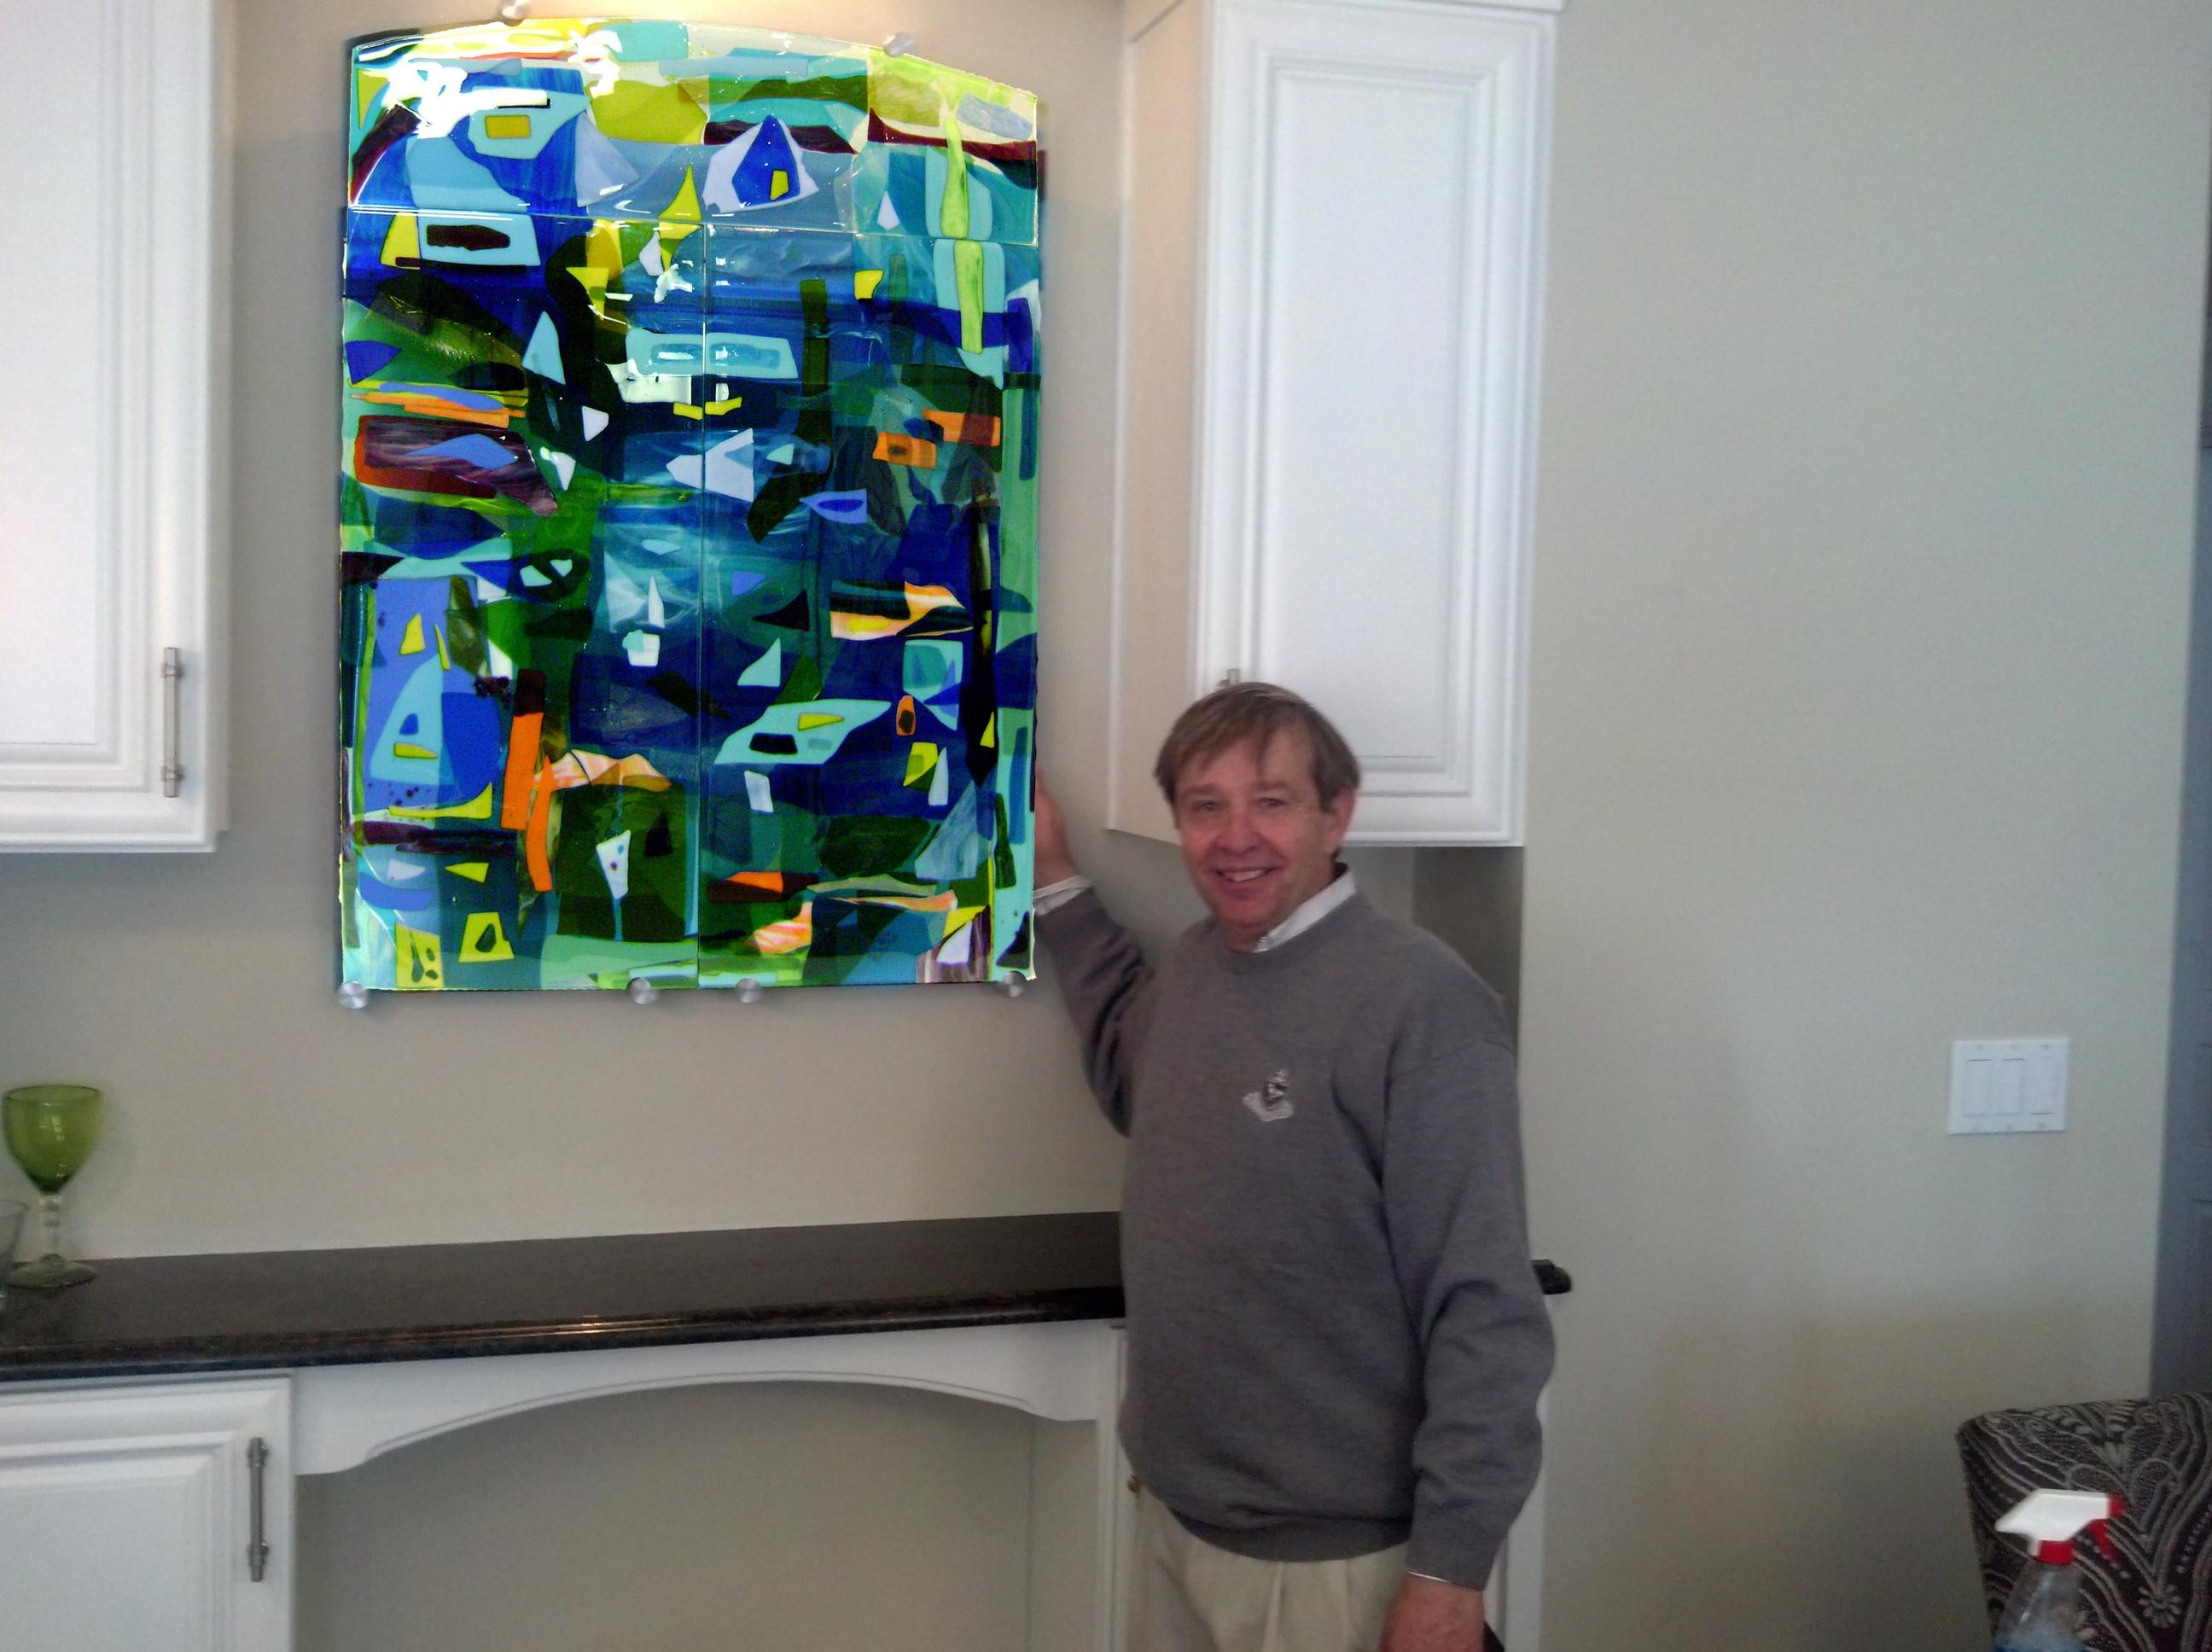 Colorful Fused Glass Wall Art Panel | Designer Glass Mosaics Within Fused Glass Wall Art Panels (View 2 of 20)